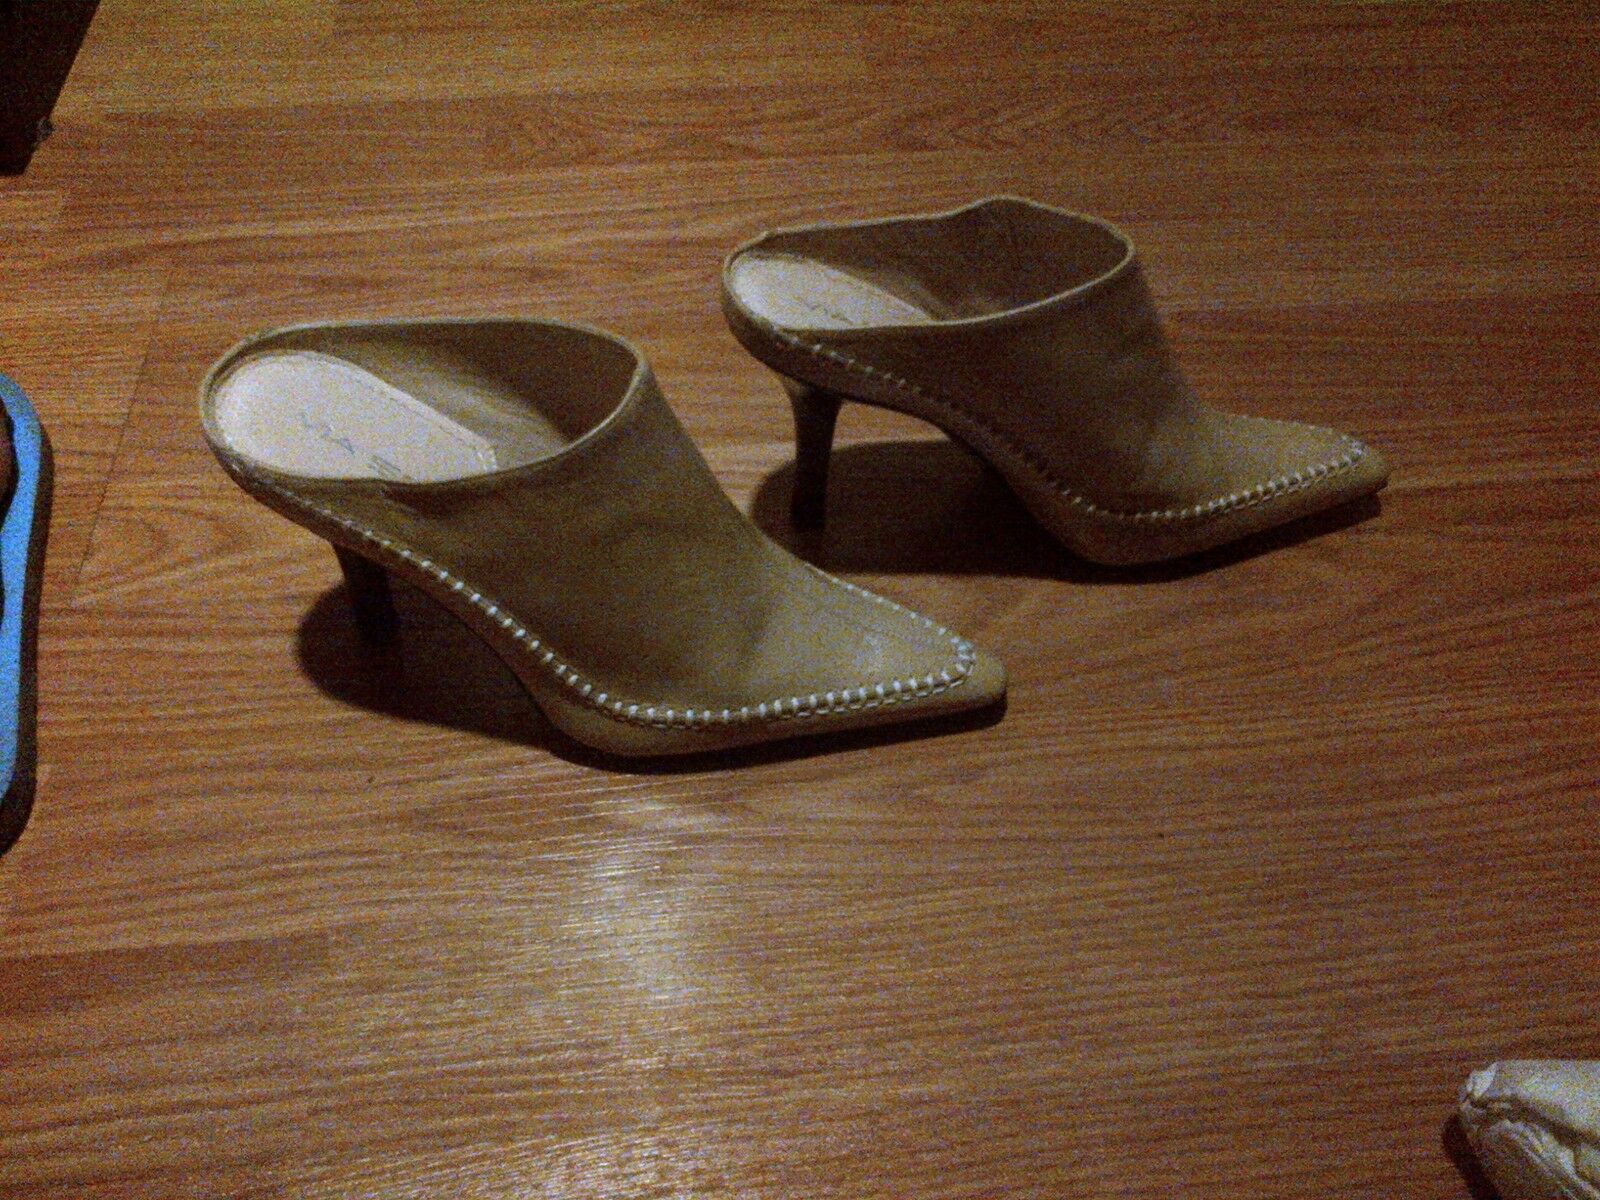 NWB BEAUTIFUL LEATHER VIA SPIGA SPIGA SPIGA CREAM MULES - SIZE 6.5 5ee609